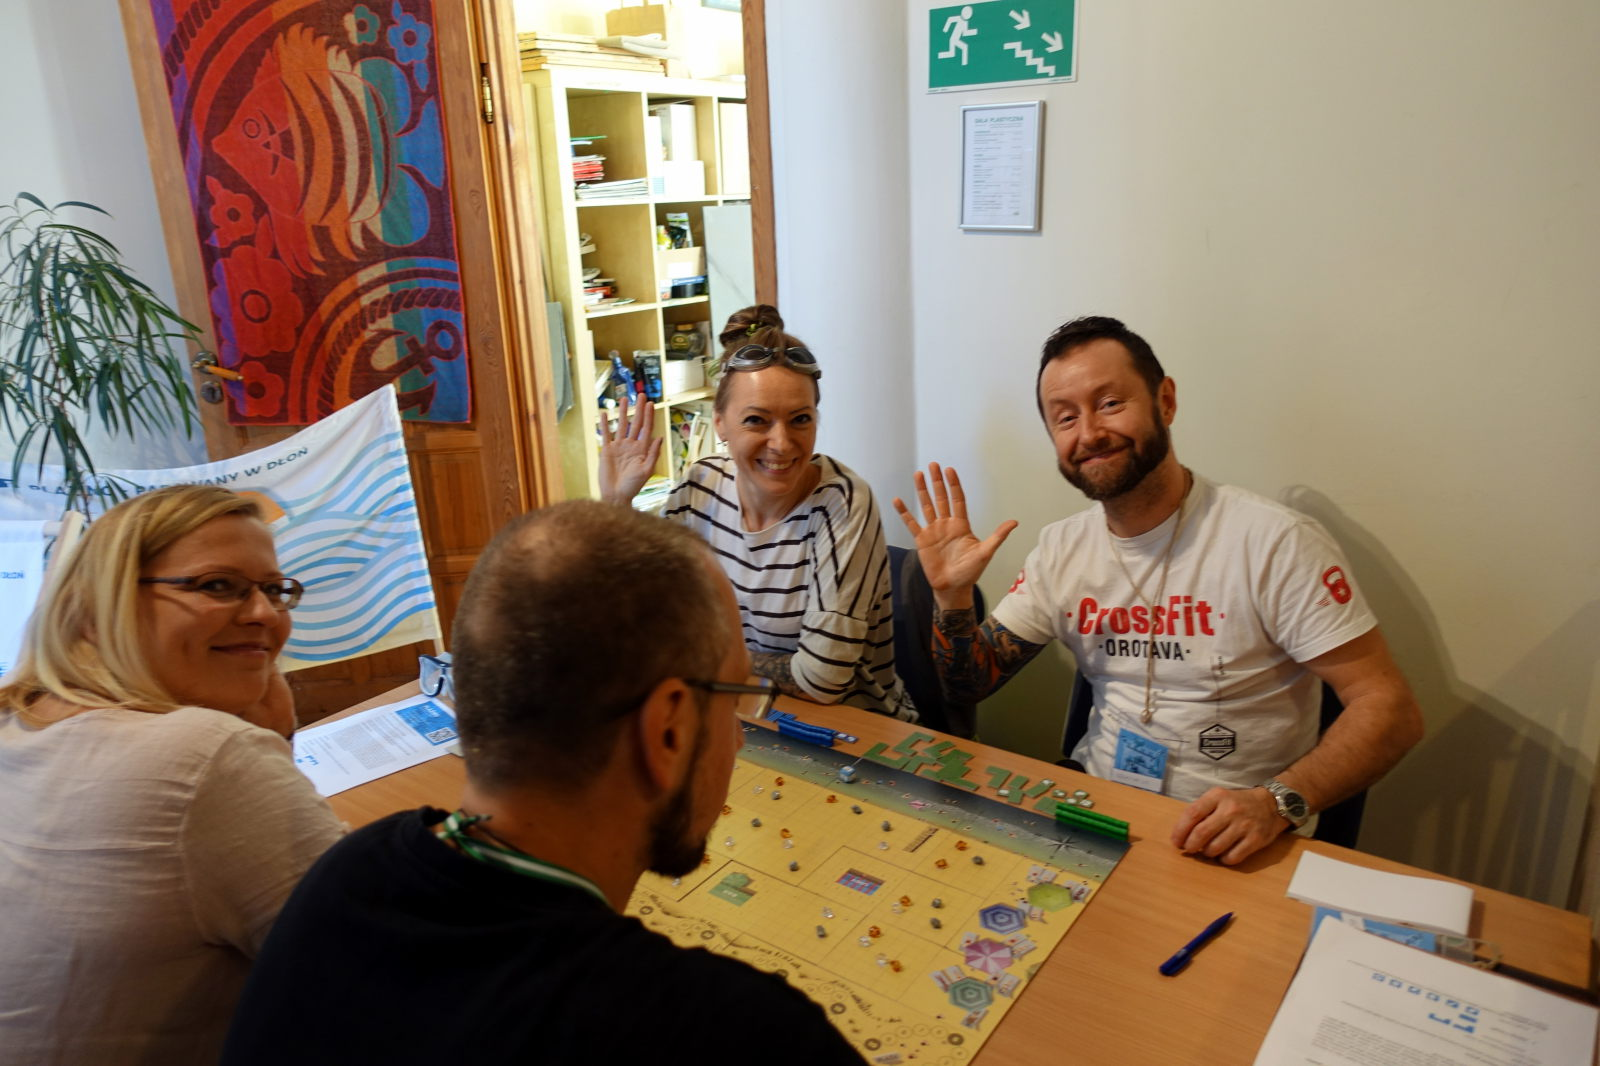 Four people playing the game. Two of them wave their hands to the photographer.